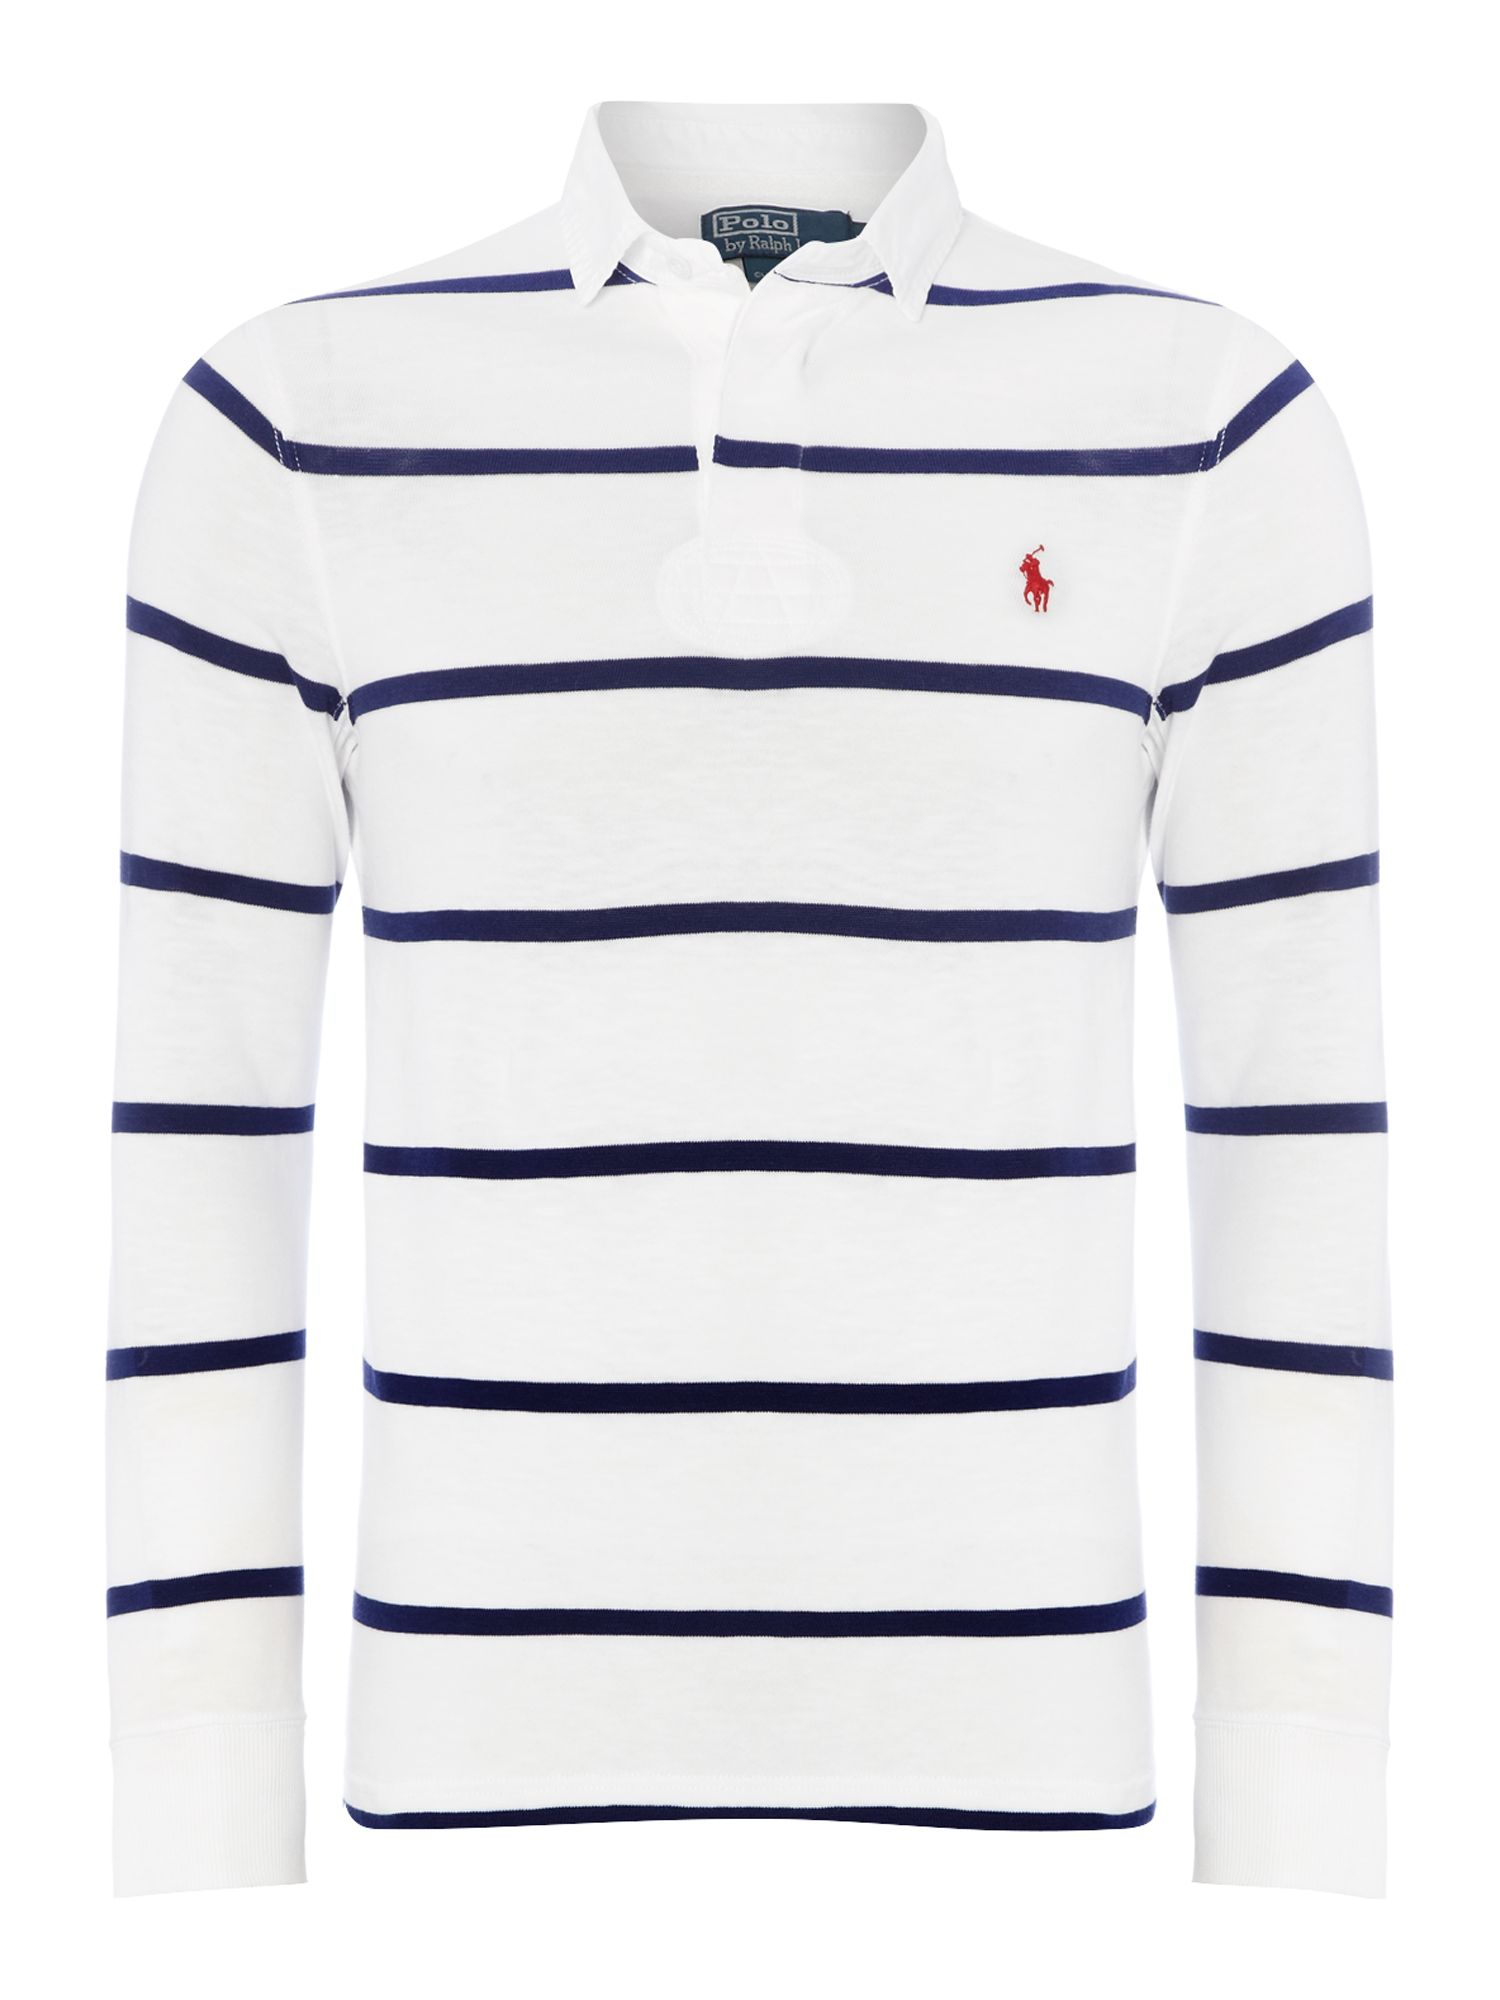 Custom fit long sleeve striped rugby shirt